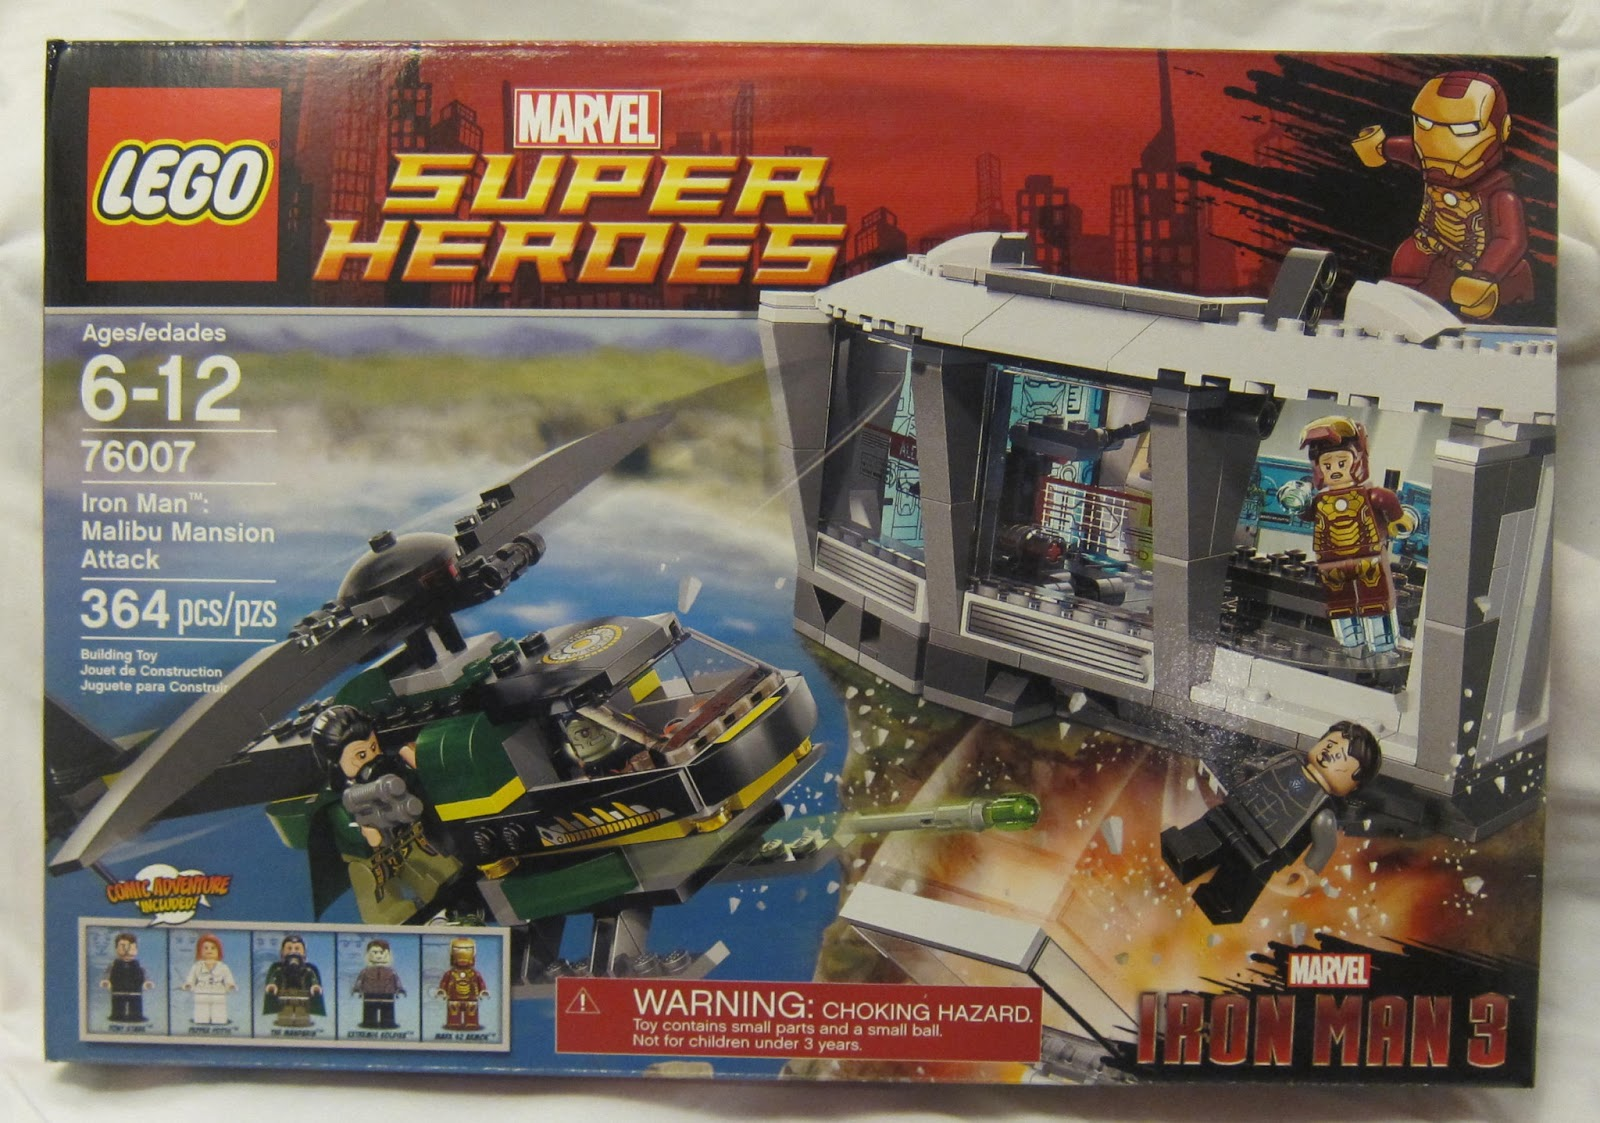 Buried in Bricks: Iron Man 3 Malibu Mansion Attack - 76007 LEGO Review